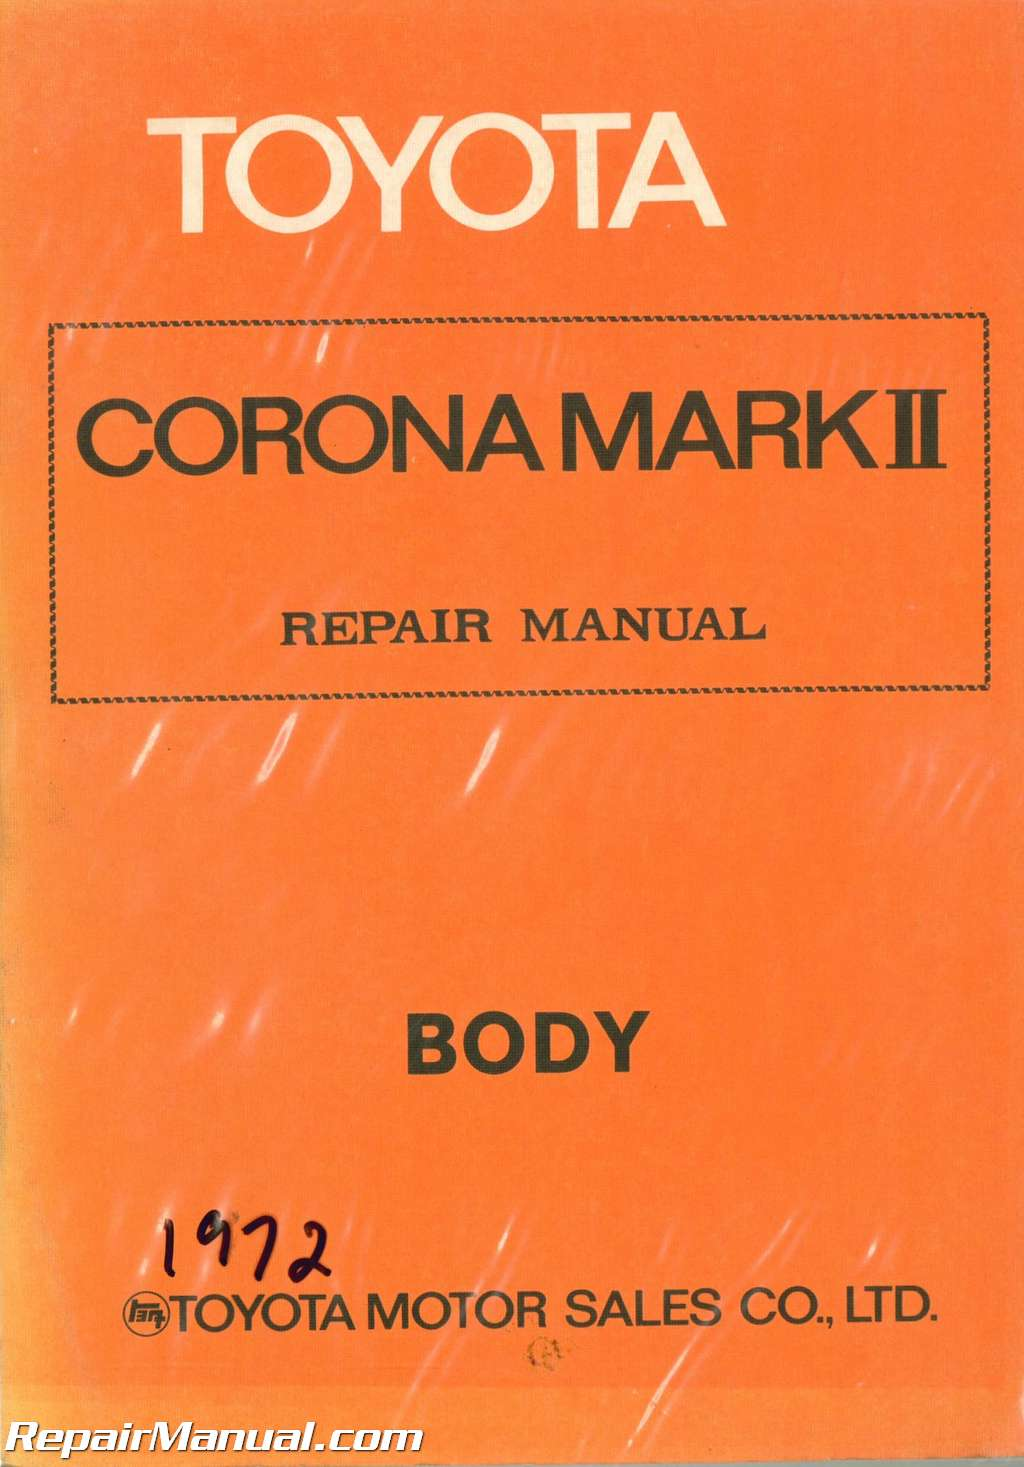 Used 1972 Toyota Corona Mark Ii Body Group Repair Manual